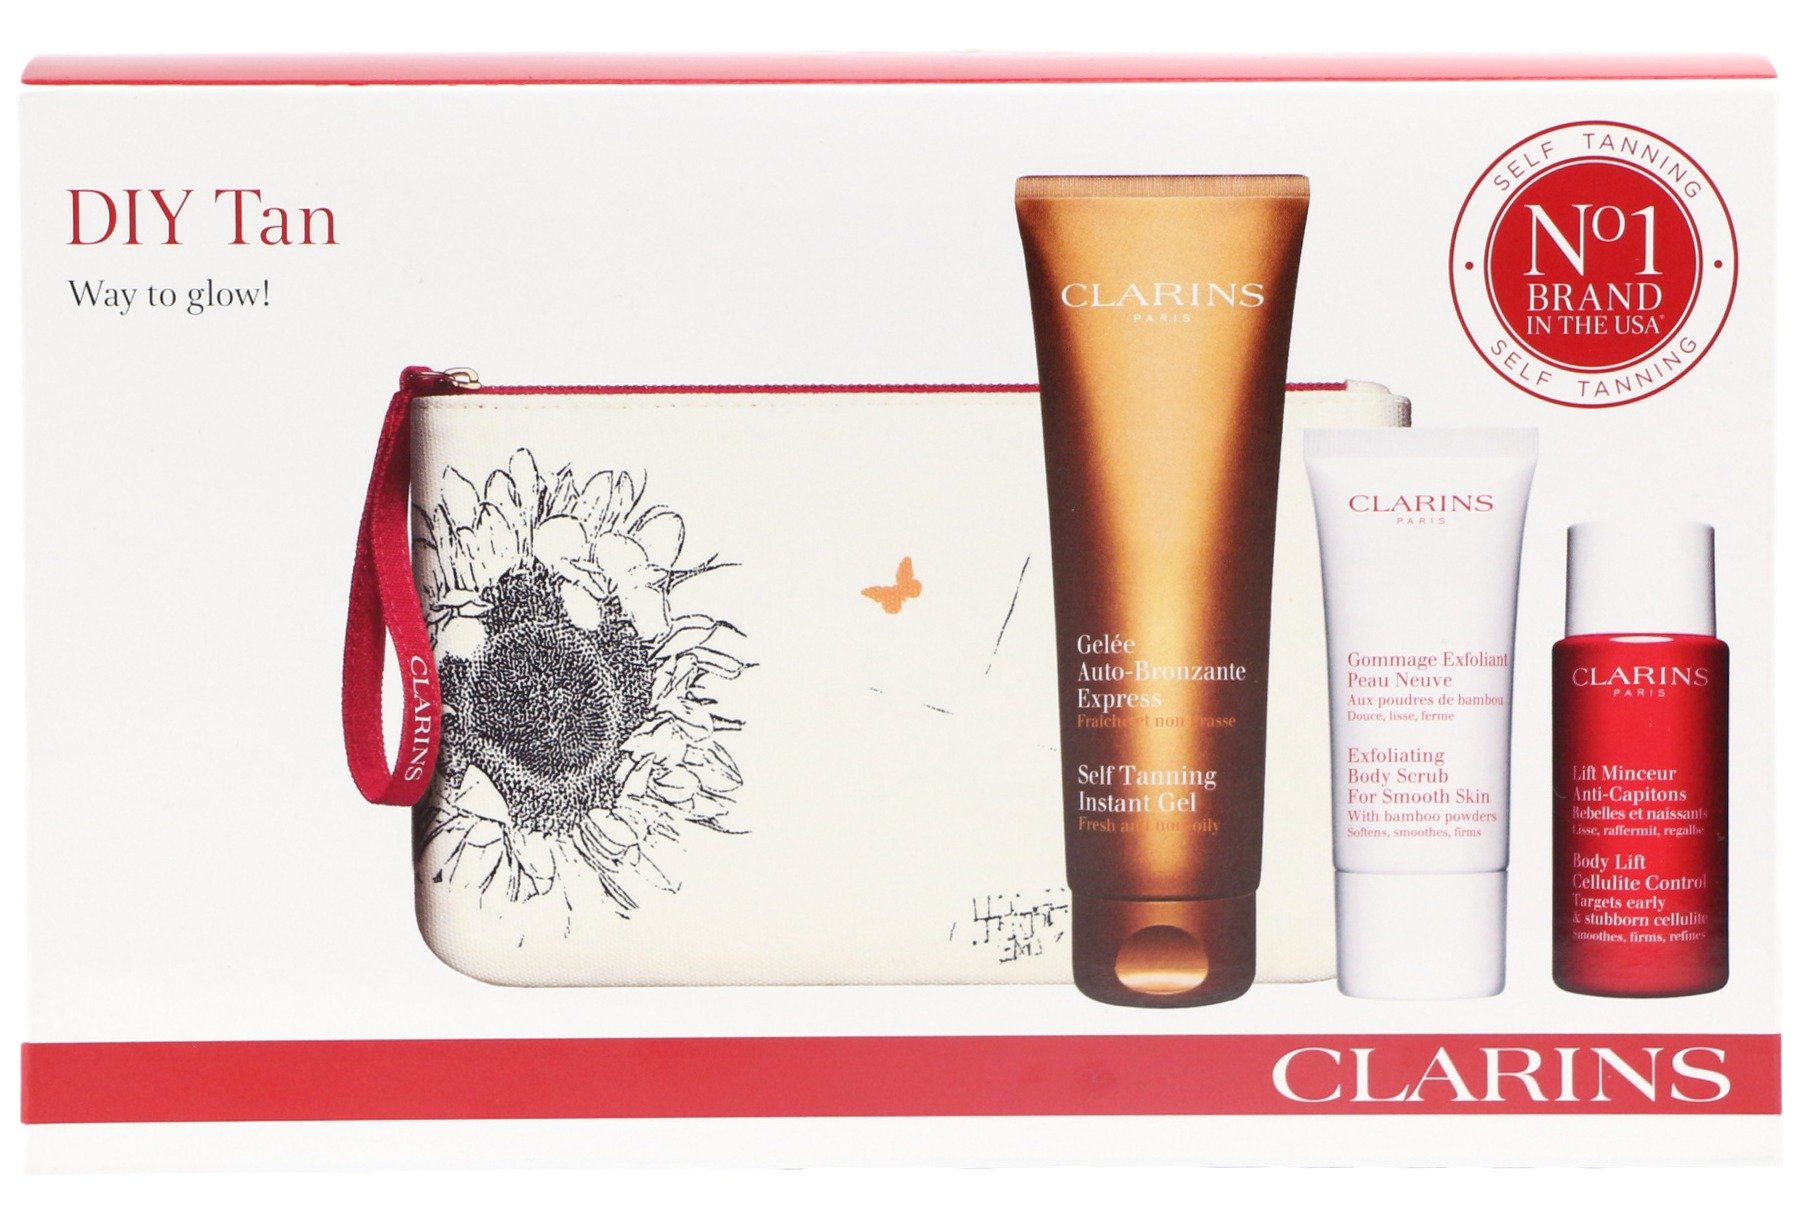 Clarins DIY Tan''Way to glow'' Self Taning Instant Gel 3 Items Gifts Set Body Lift Cellulite Control & Body Scrub by Clarins